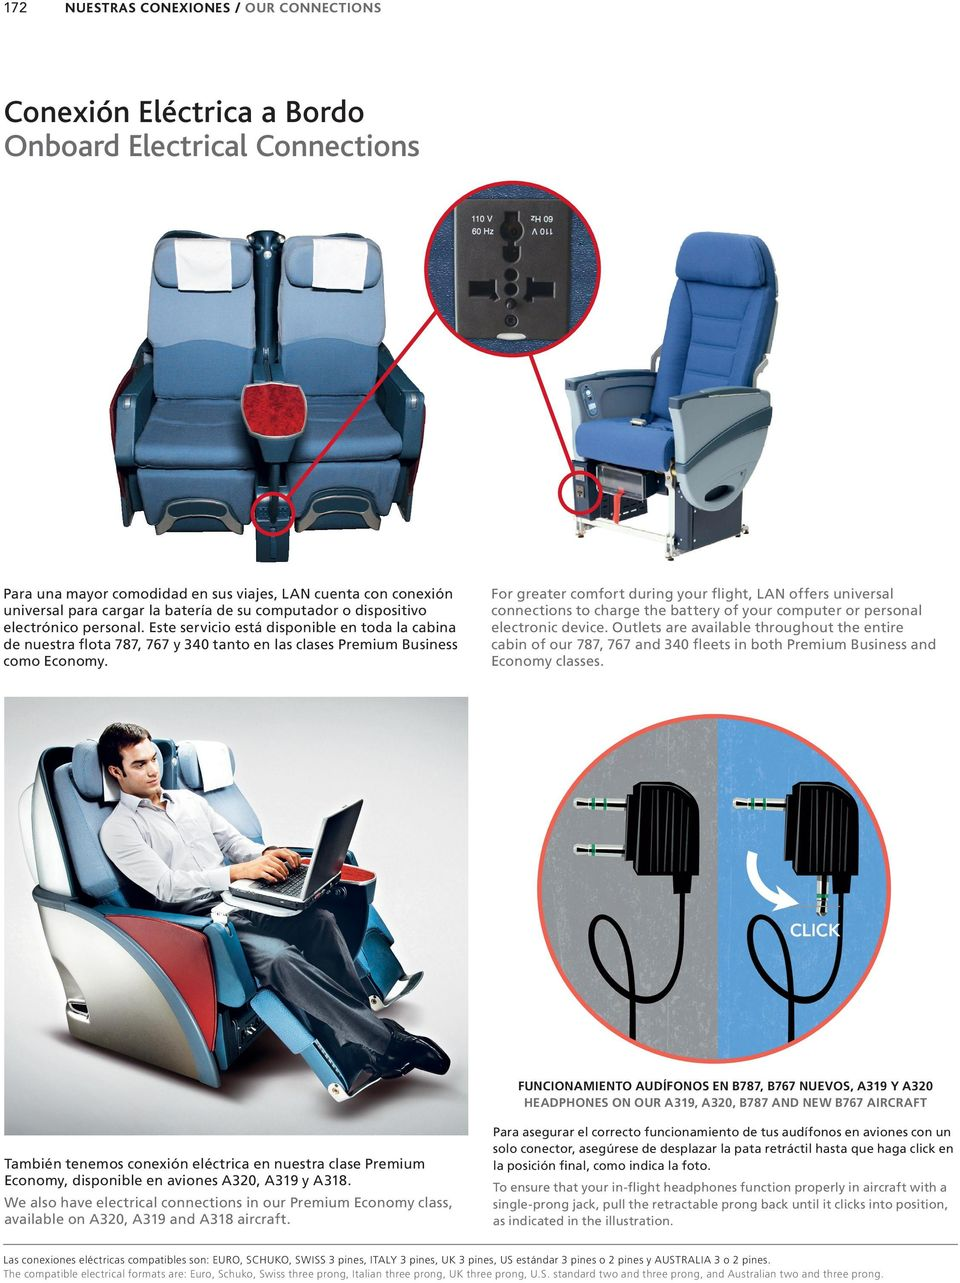 For greater comfort during your flight, LAN offers universal connections to charge the battery of your computer or personal electronic device.